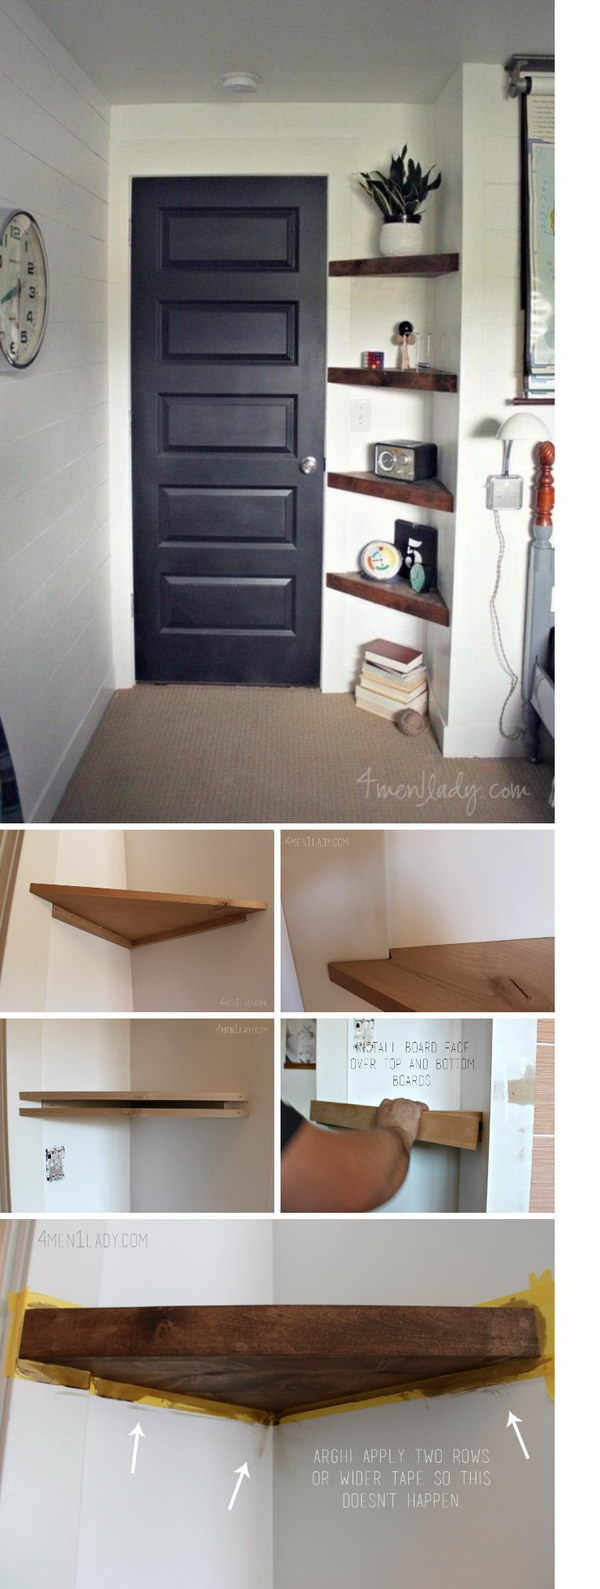 Use Floating Corner Shelves To Create More Storage In An Awkward Small  Corner